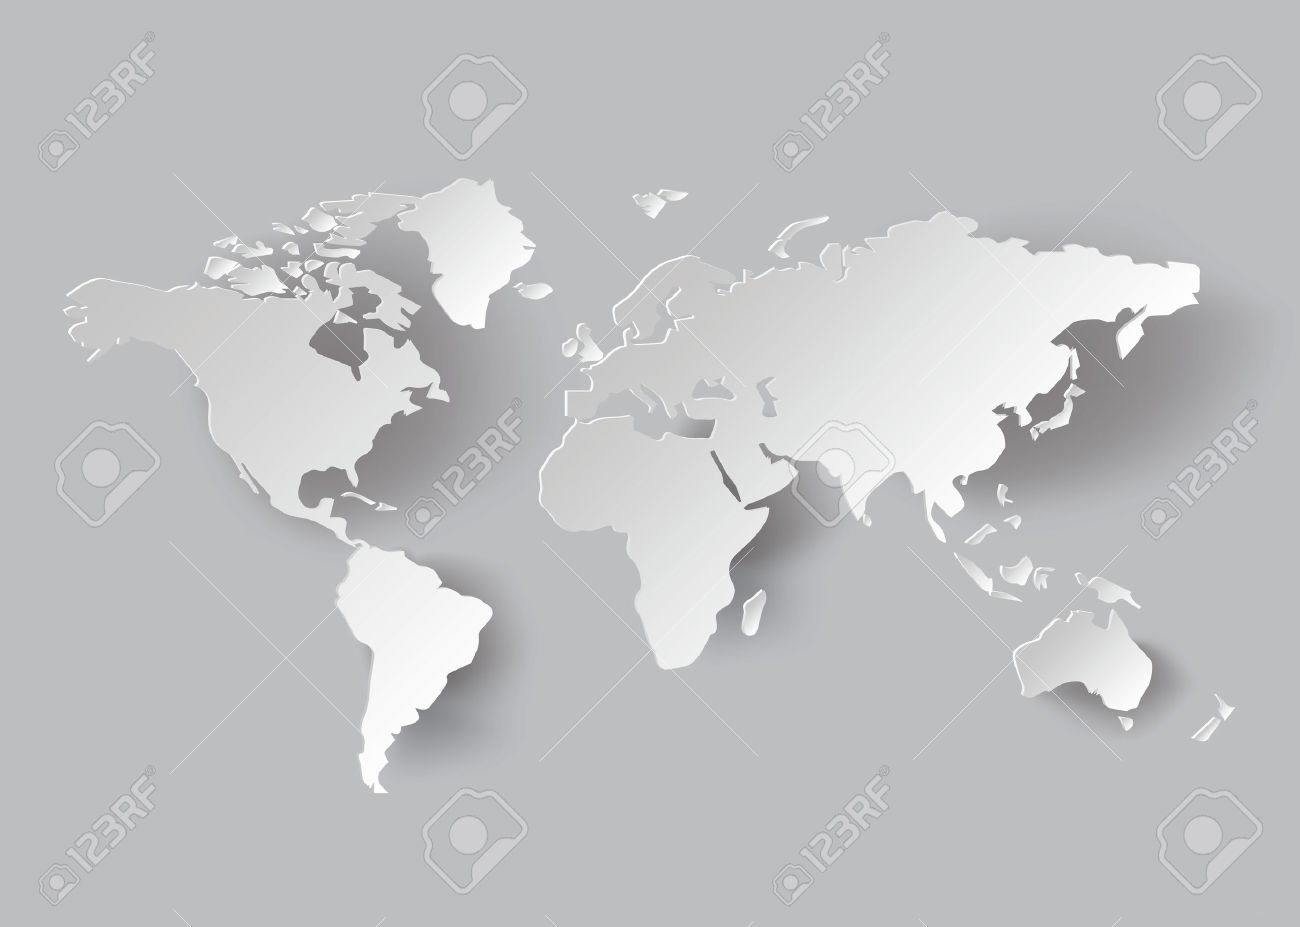 Clipart black and white countries world clipground colored the world borders pictures stock map continents images gumiabroncs Choice Image